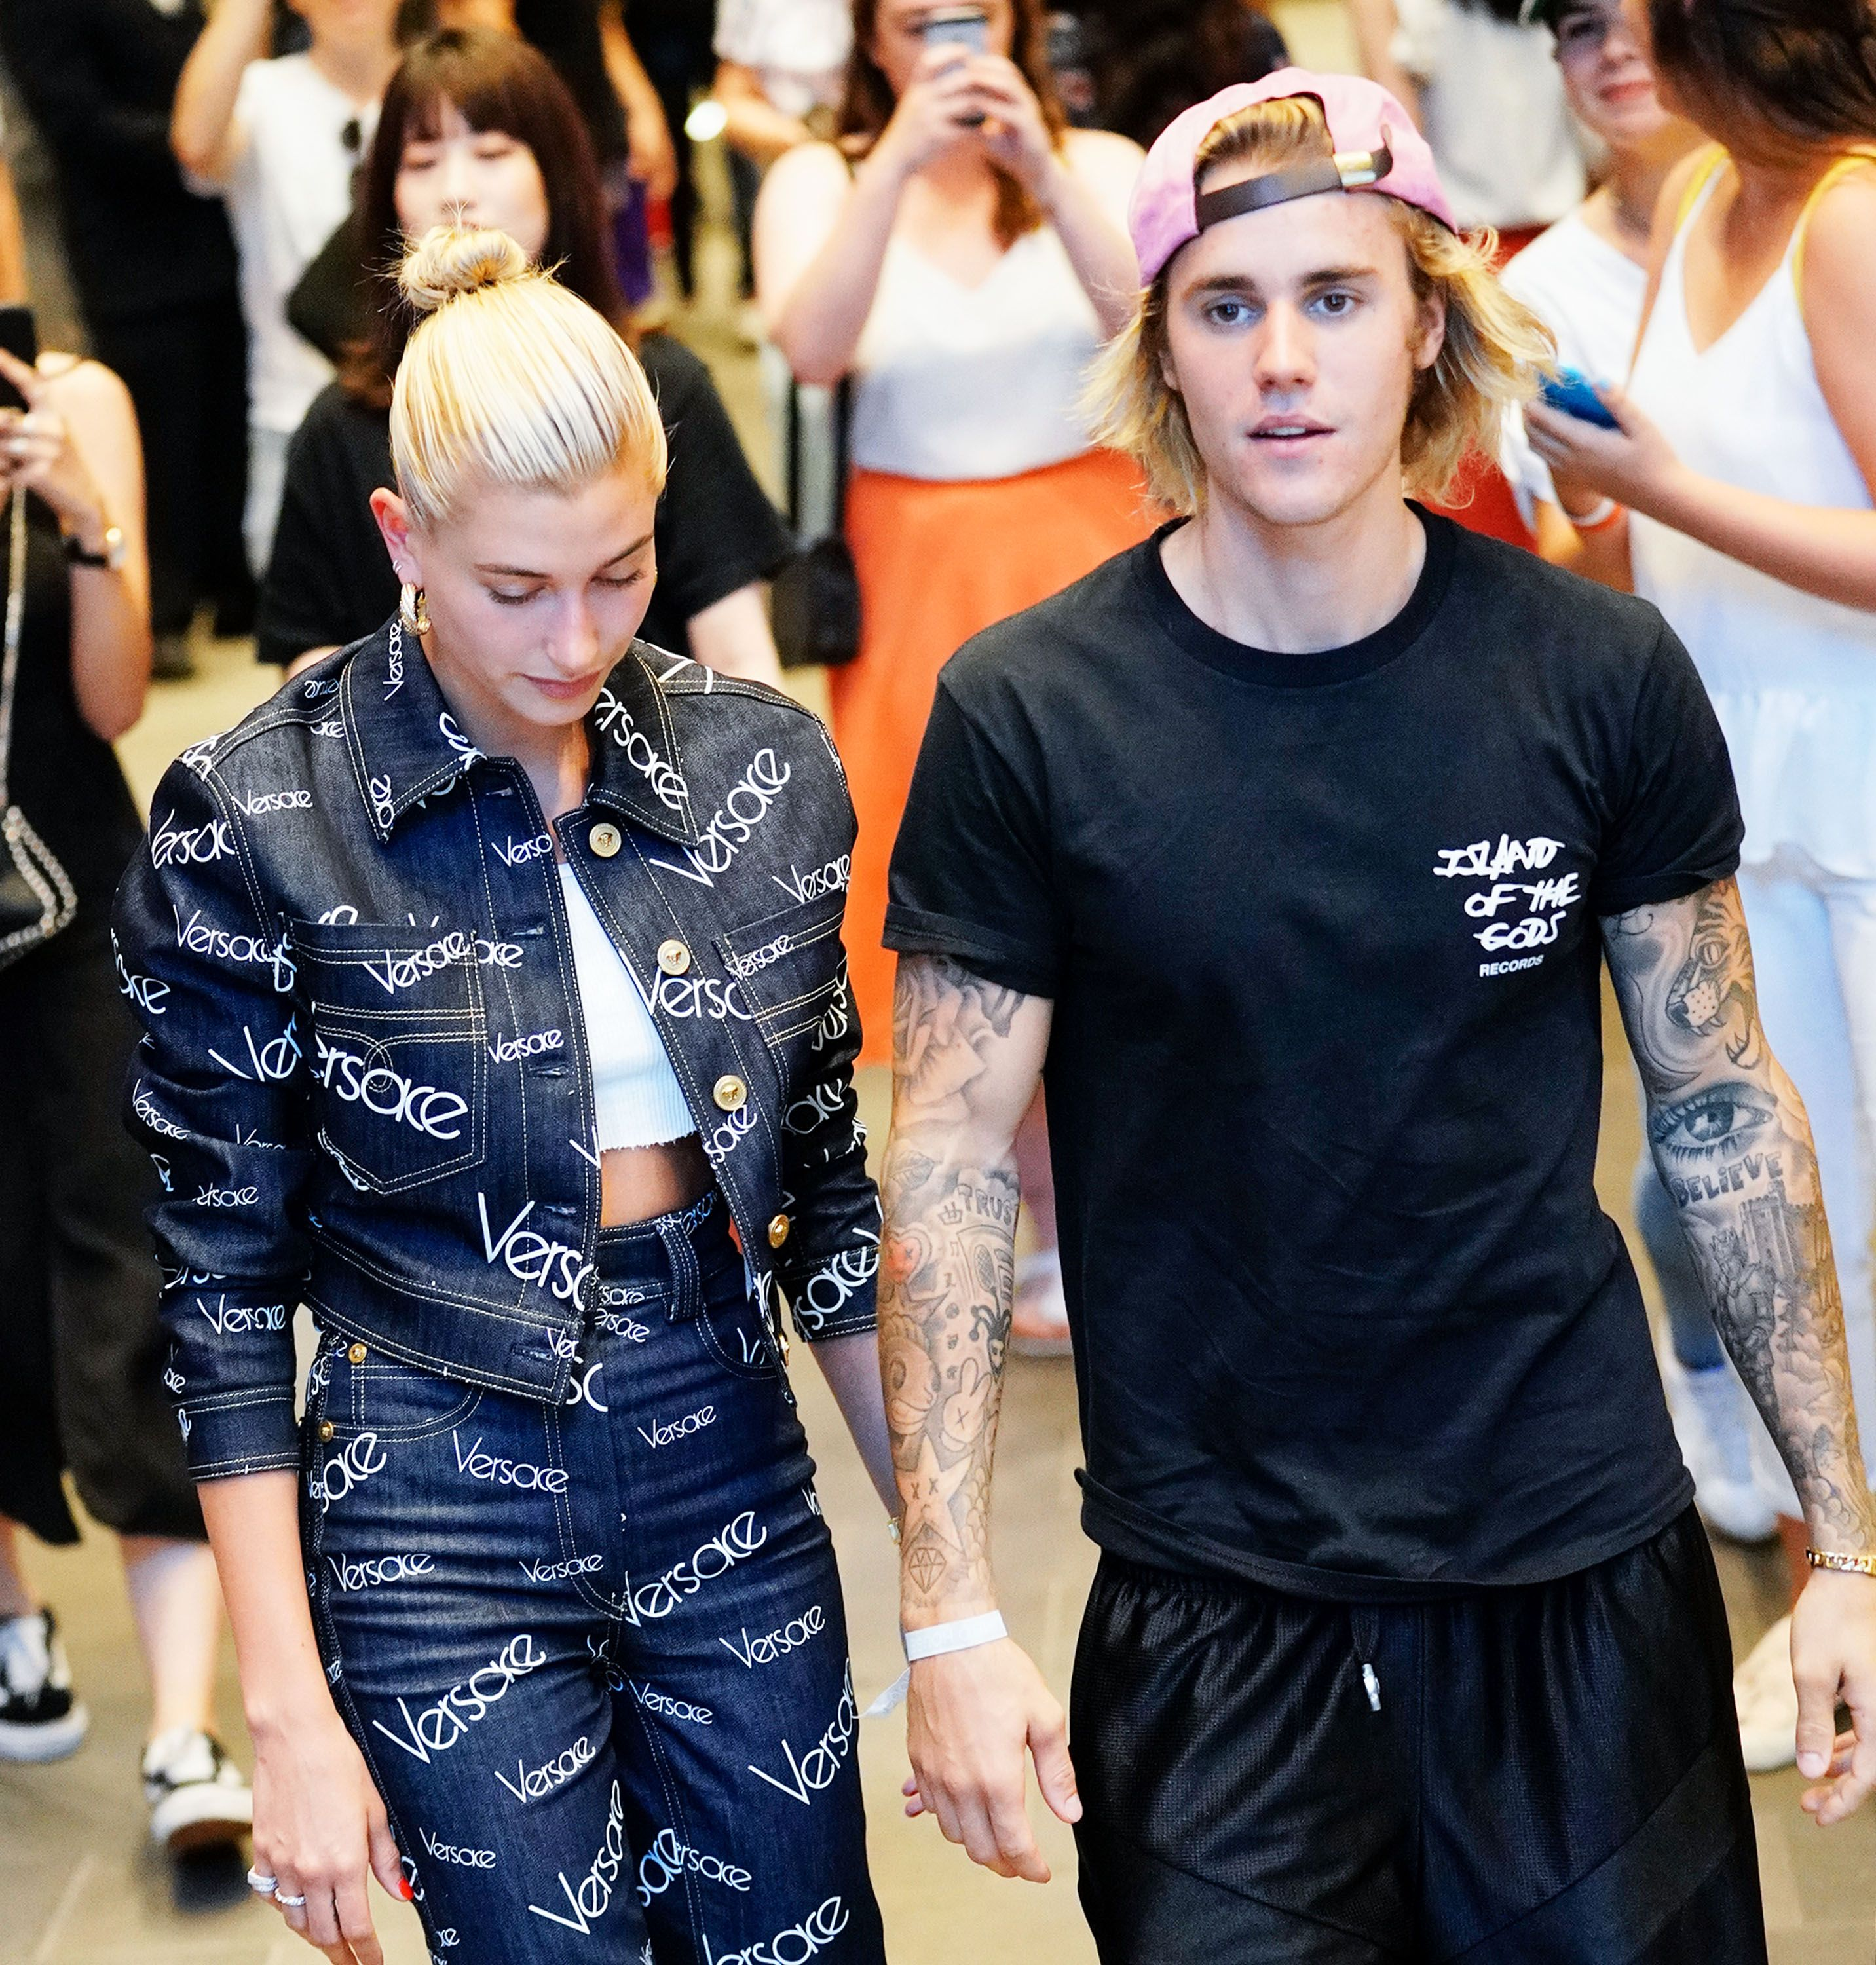 5a2c5305e807 Justin Bieber Engaged to Hailey Baldwin - Justin Bieber and Hailey Baldwin  Engaged